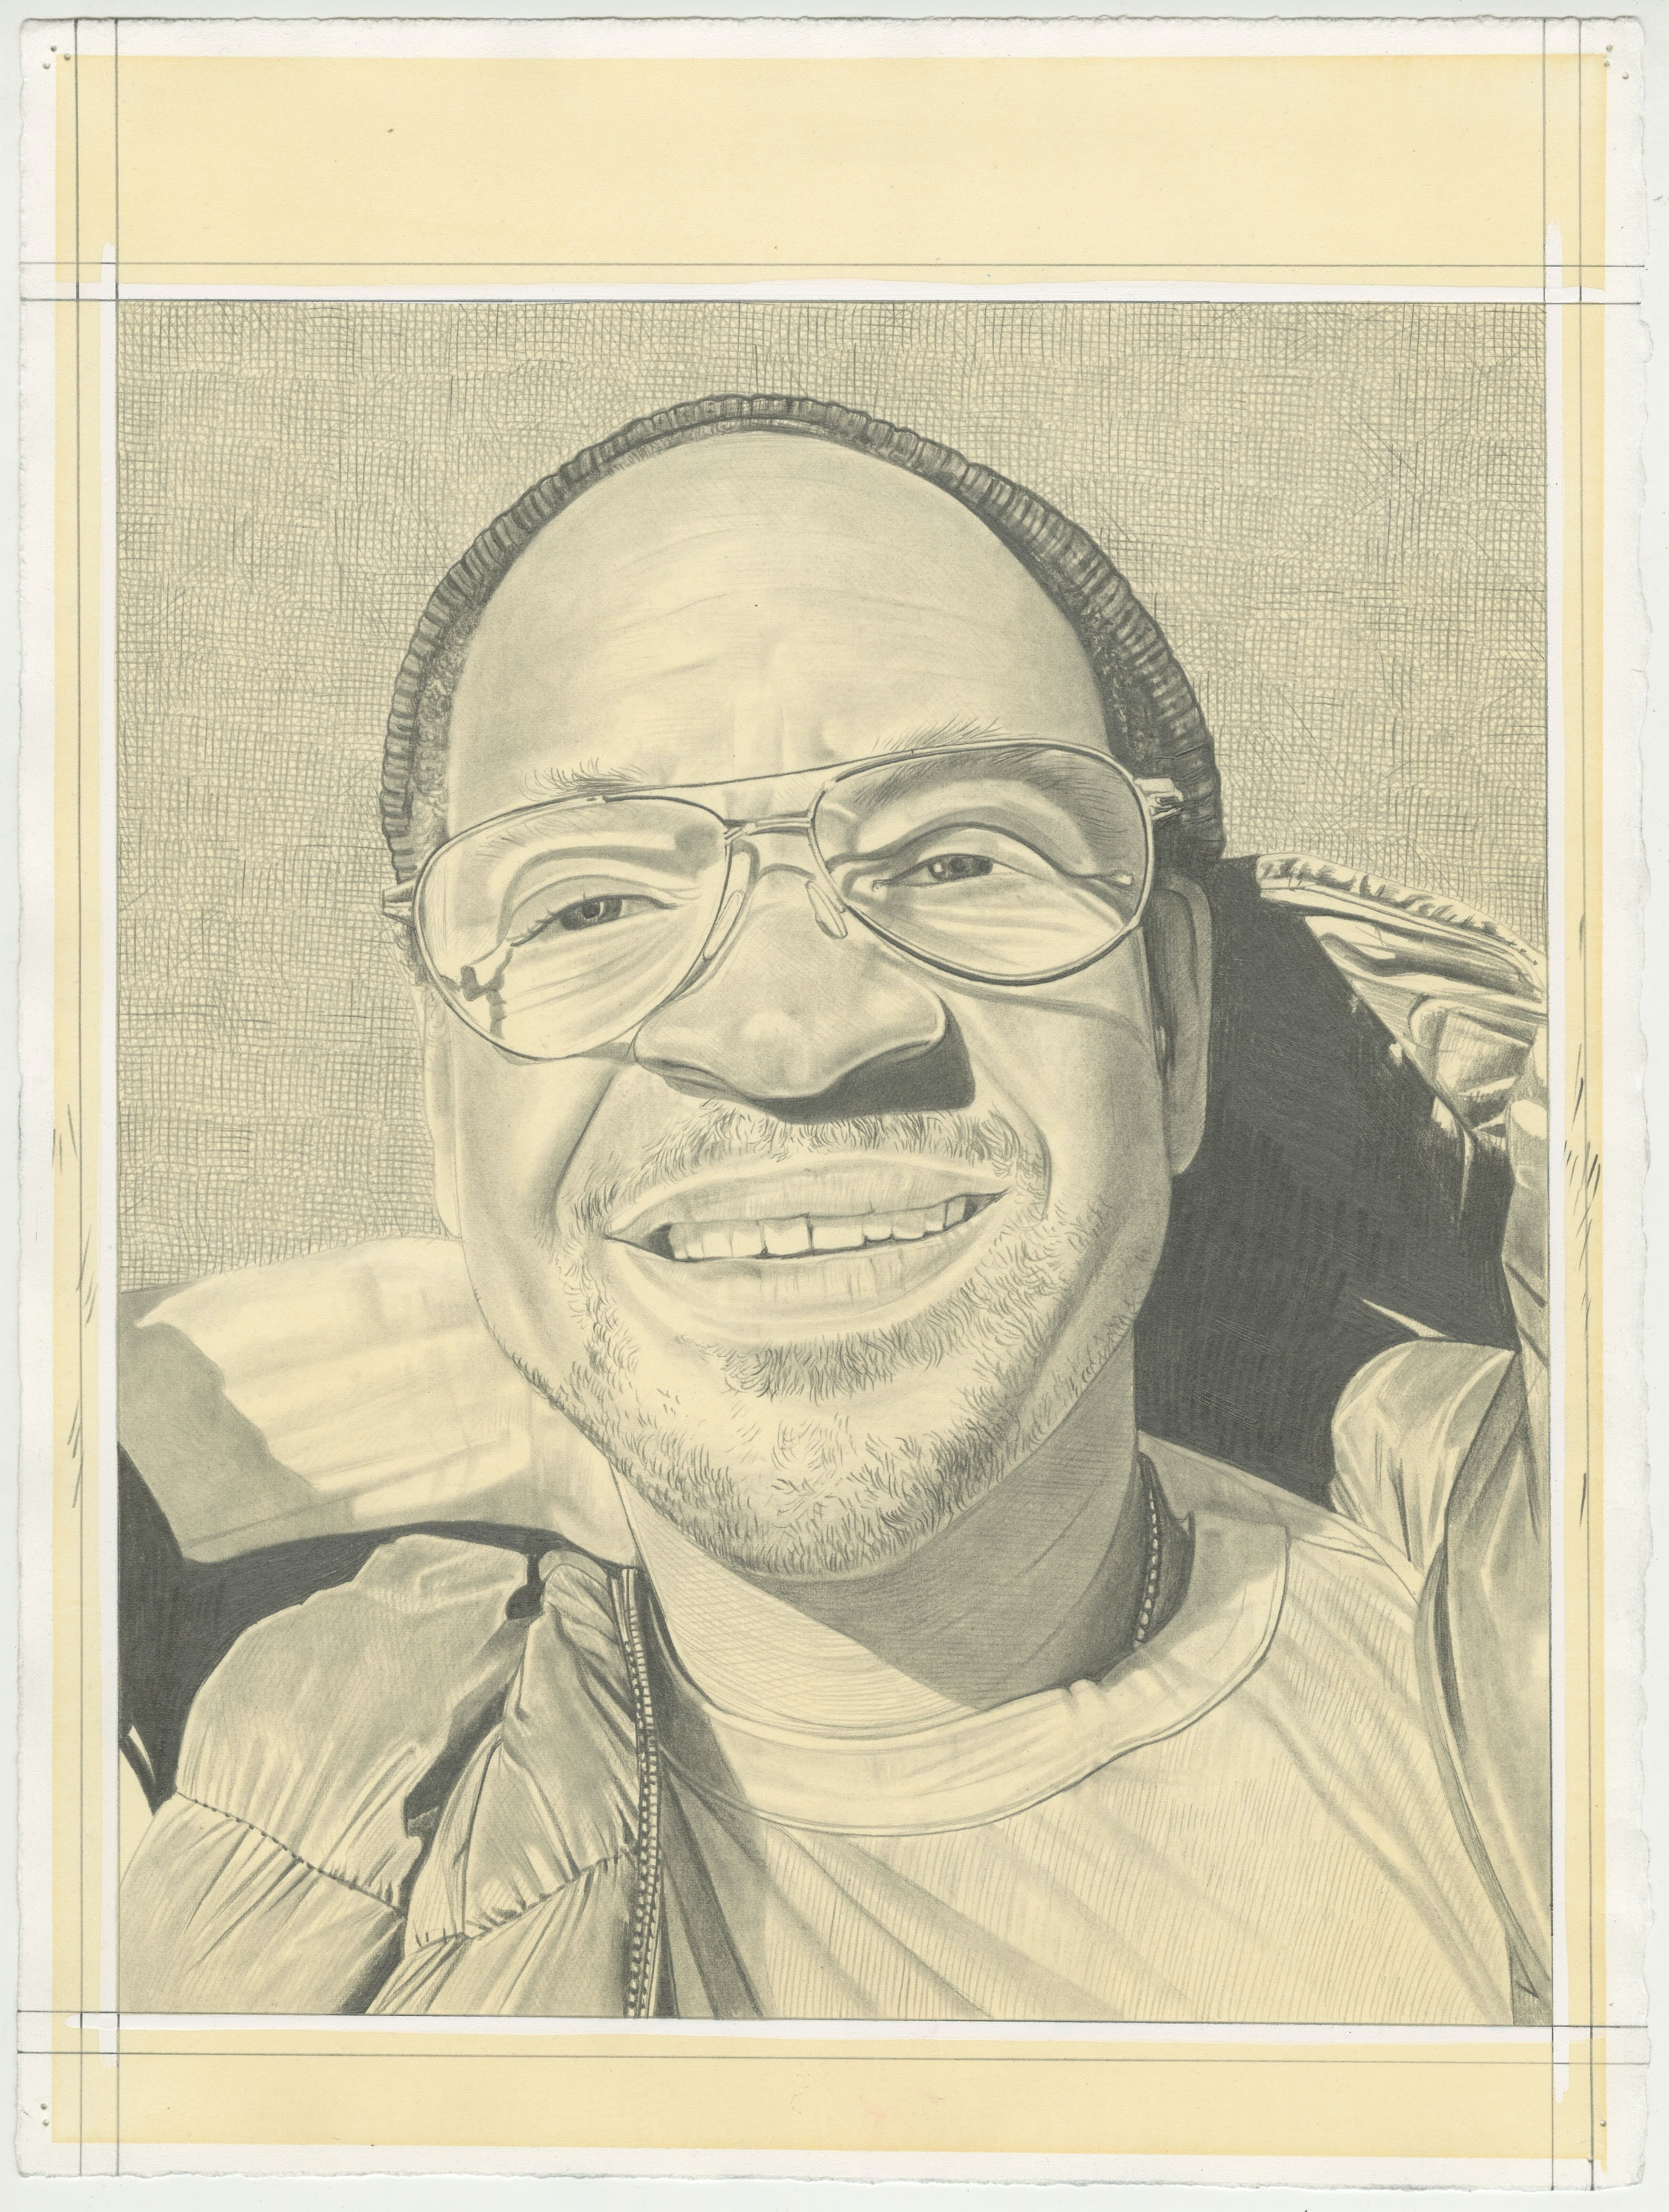 Portrait of Lyle Ashton Harris, pencil on paper by Phong H. Bui.